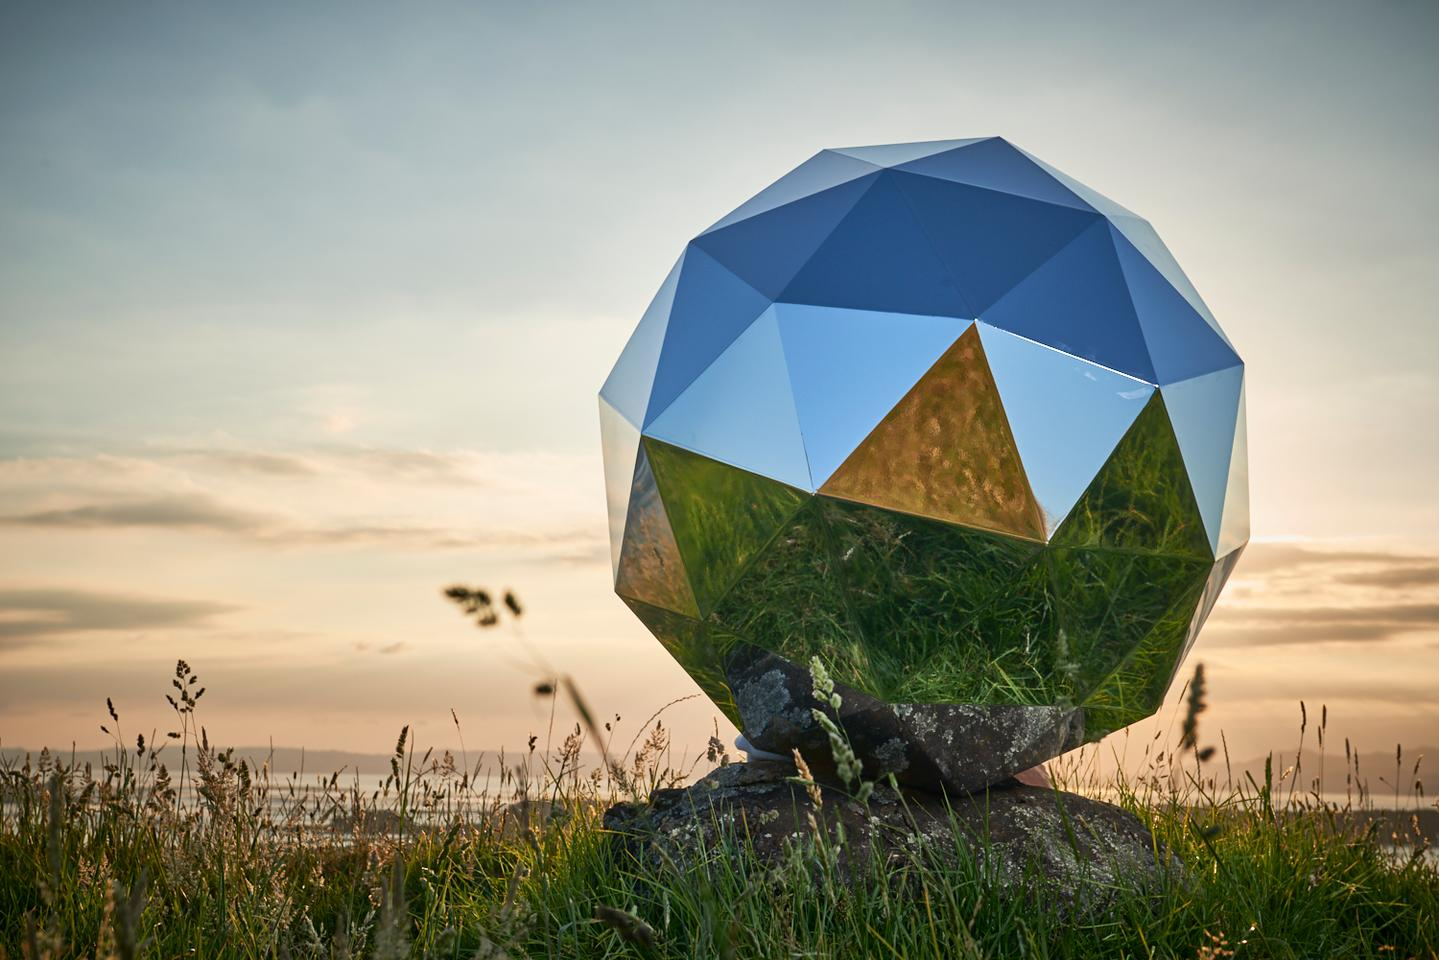 Humanity Star is designed to be visible to everyone on Earth